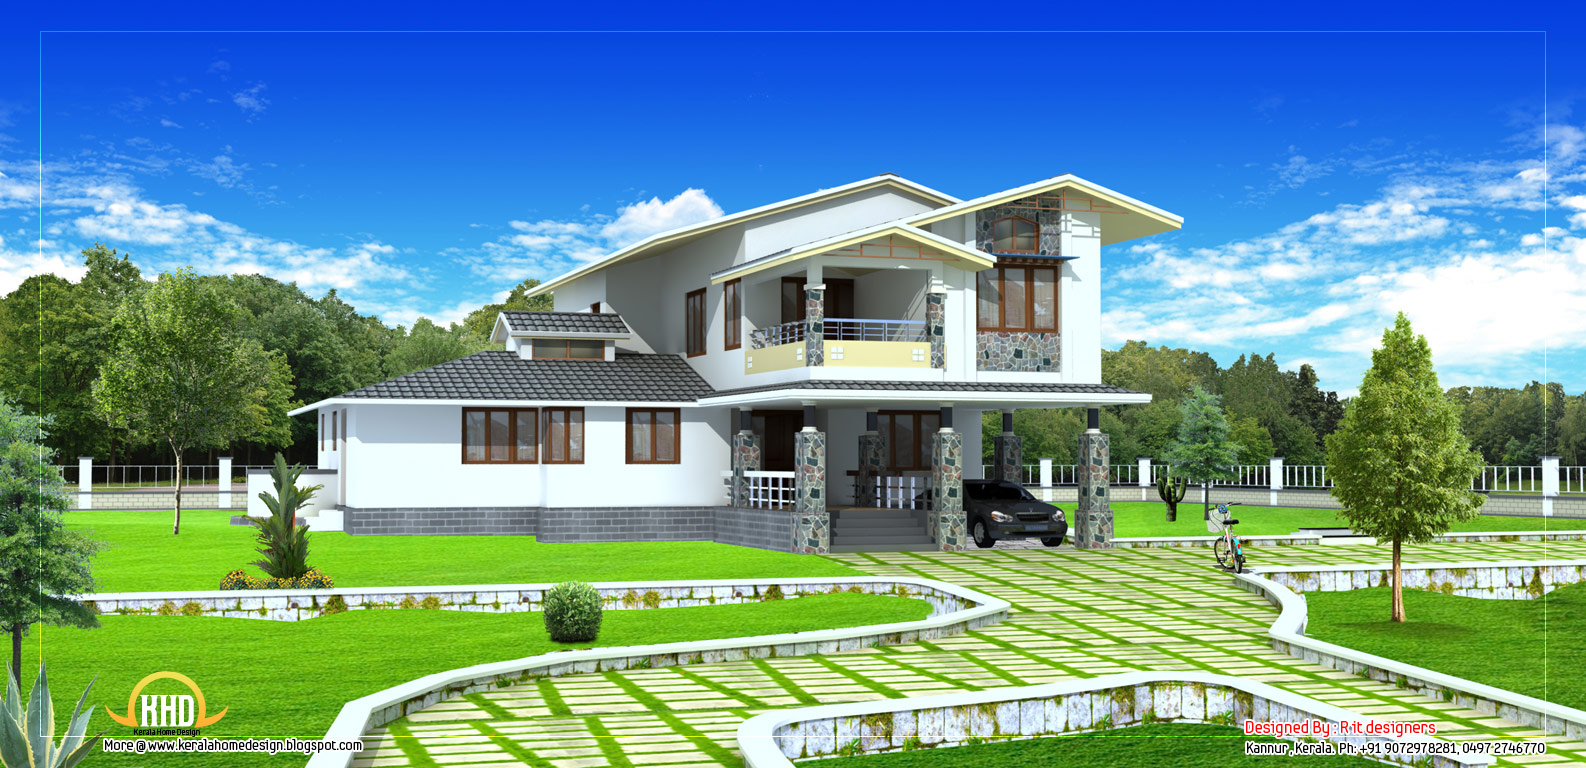 2 story house plan 2490 sq ft kerala home design and for 2 level house plans